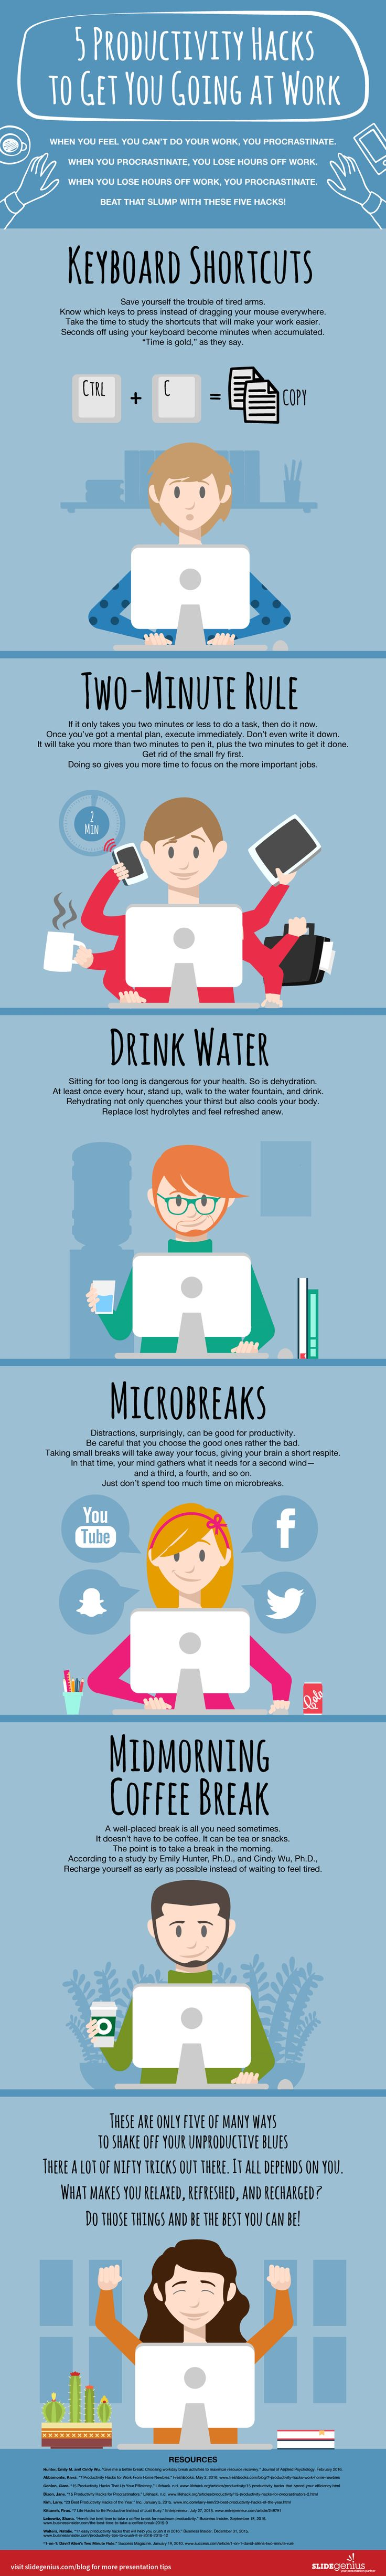 5 Productivity Hacks to Get You Going at Work #Infographic #Business #Career